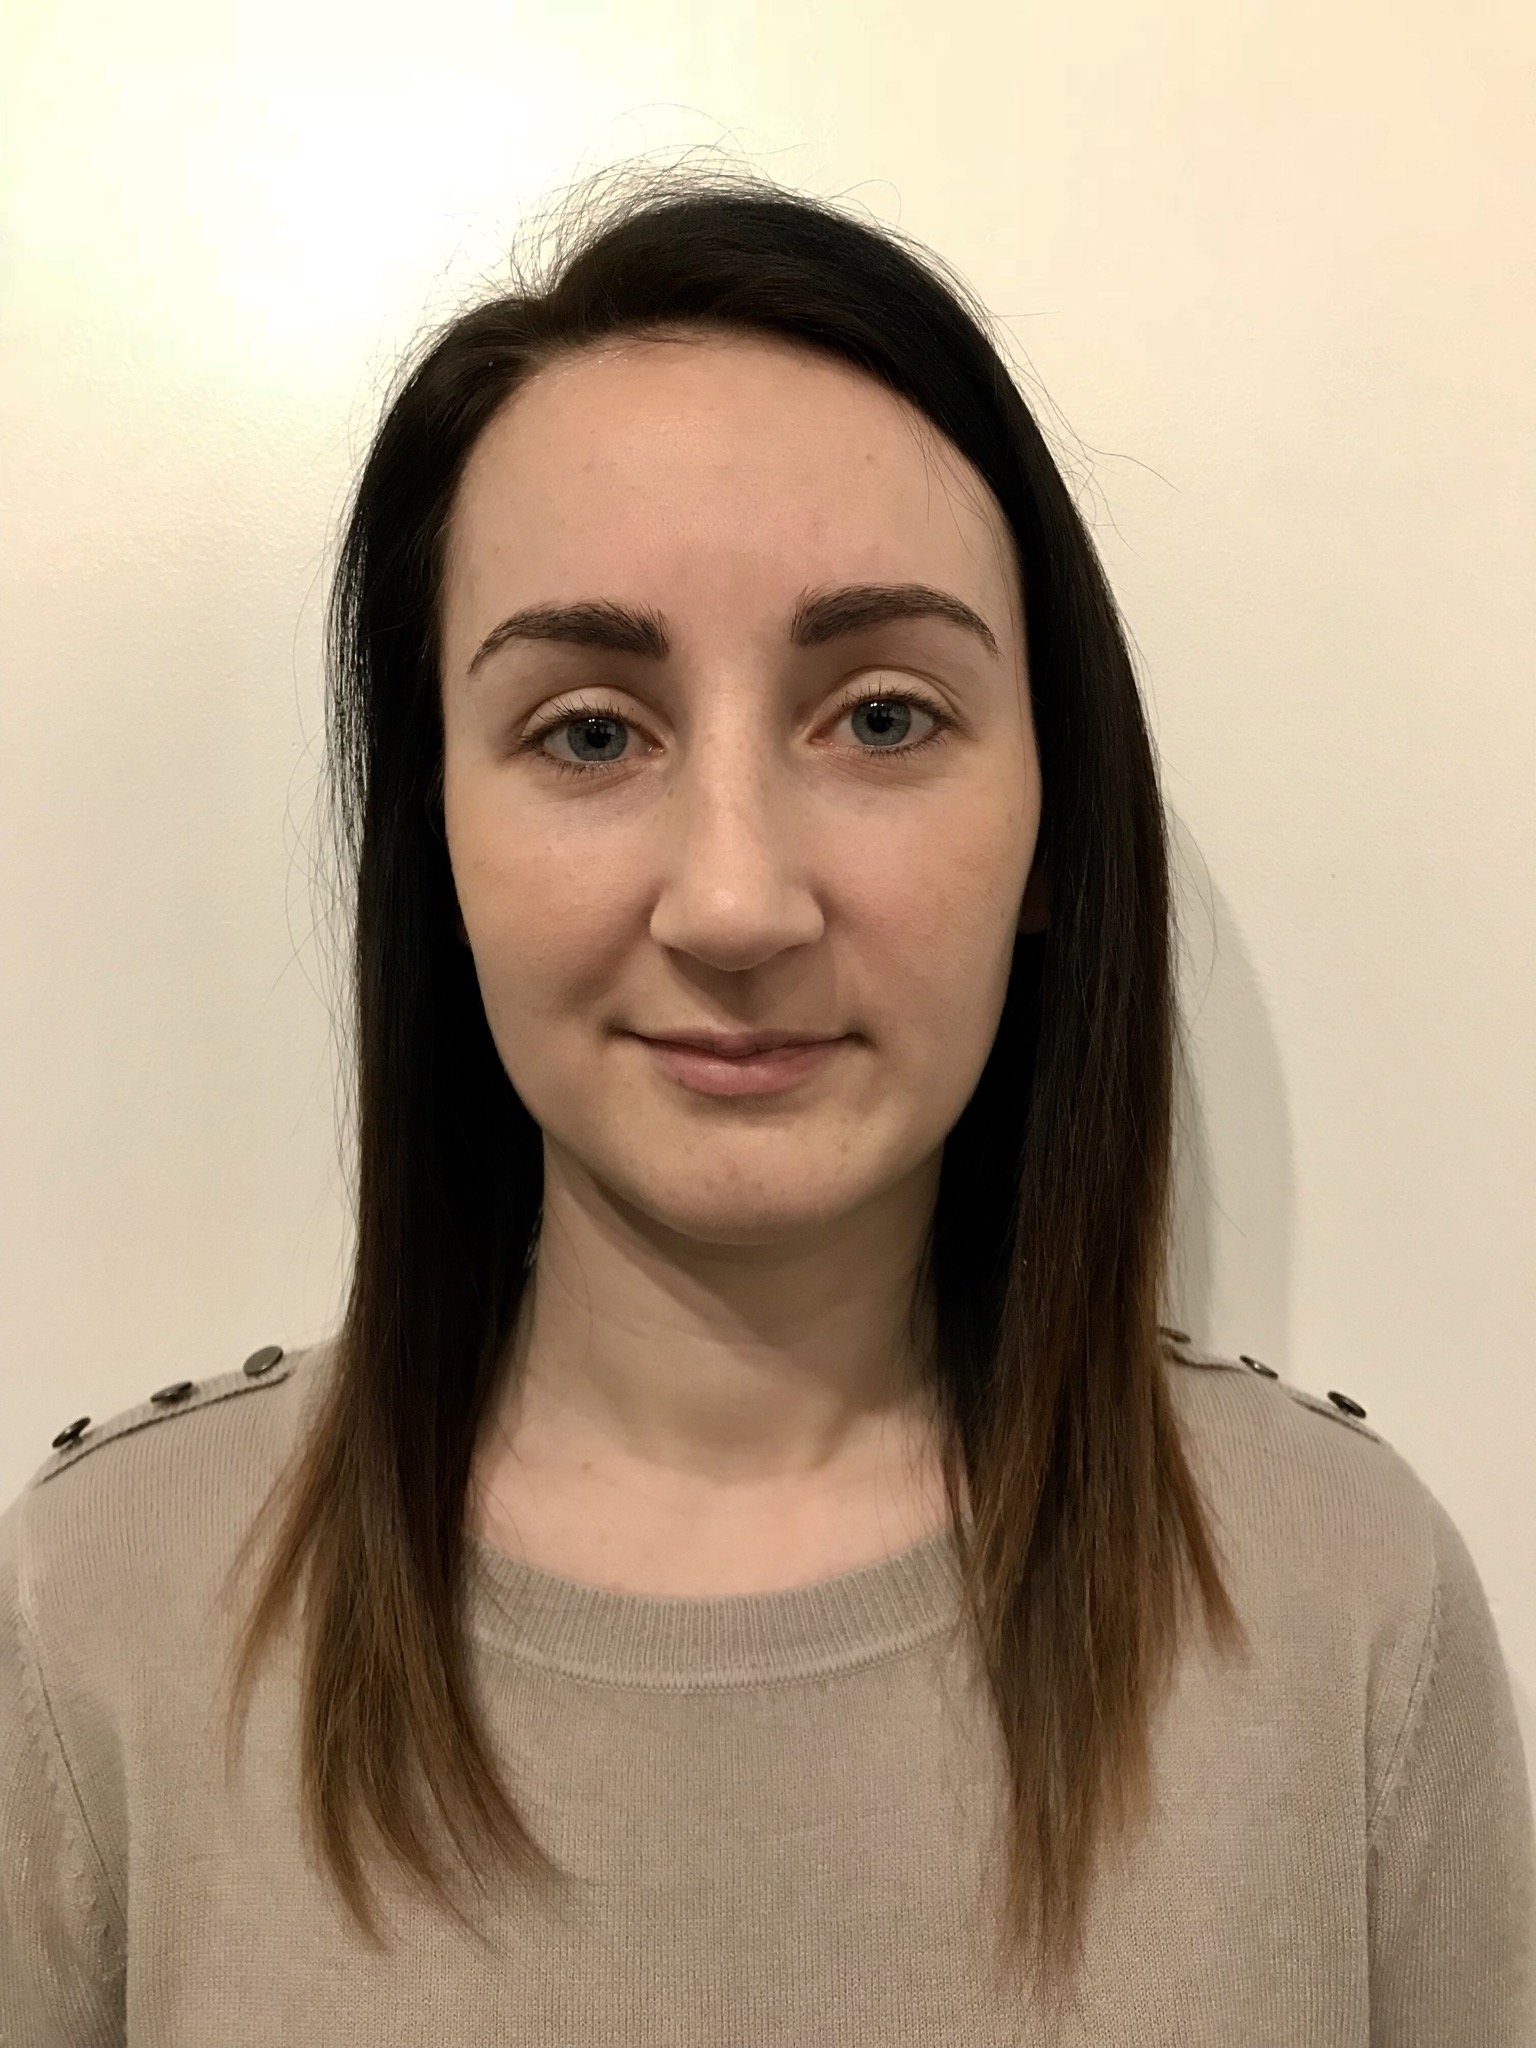 Natalie 's background as a teaching assistant includes the use of Makaton where needed and assisting with numeracy and literacy. She has also been trained in Autism Awareness and Disability Awareness